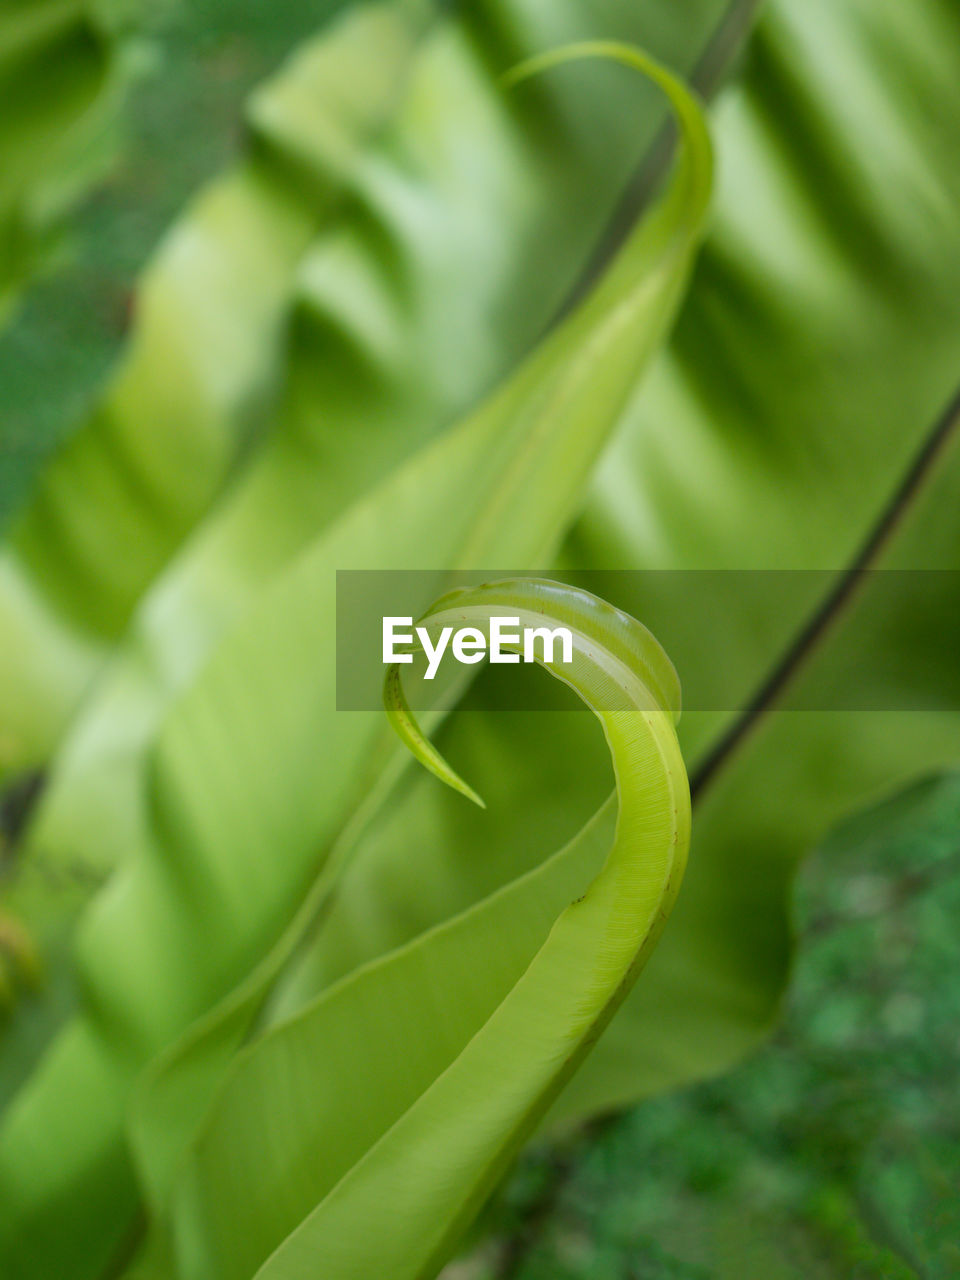 green color, plant, growth, selective focus, close-up, spiral, no people, beauty in nature, tendril, curled up, nature, plant part, day, vine, leaf, freshness, focus on foreground, outdoors, vulnerability, tranquility